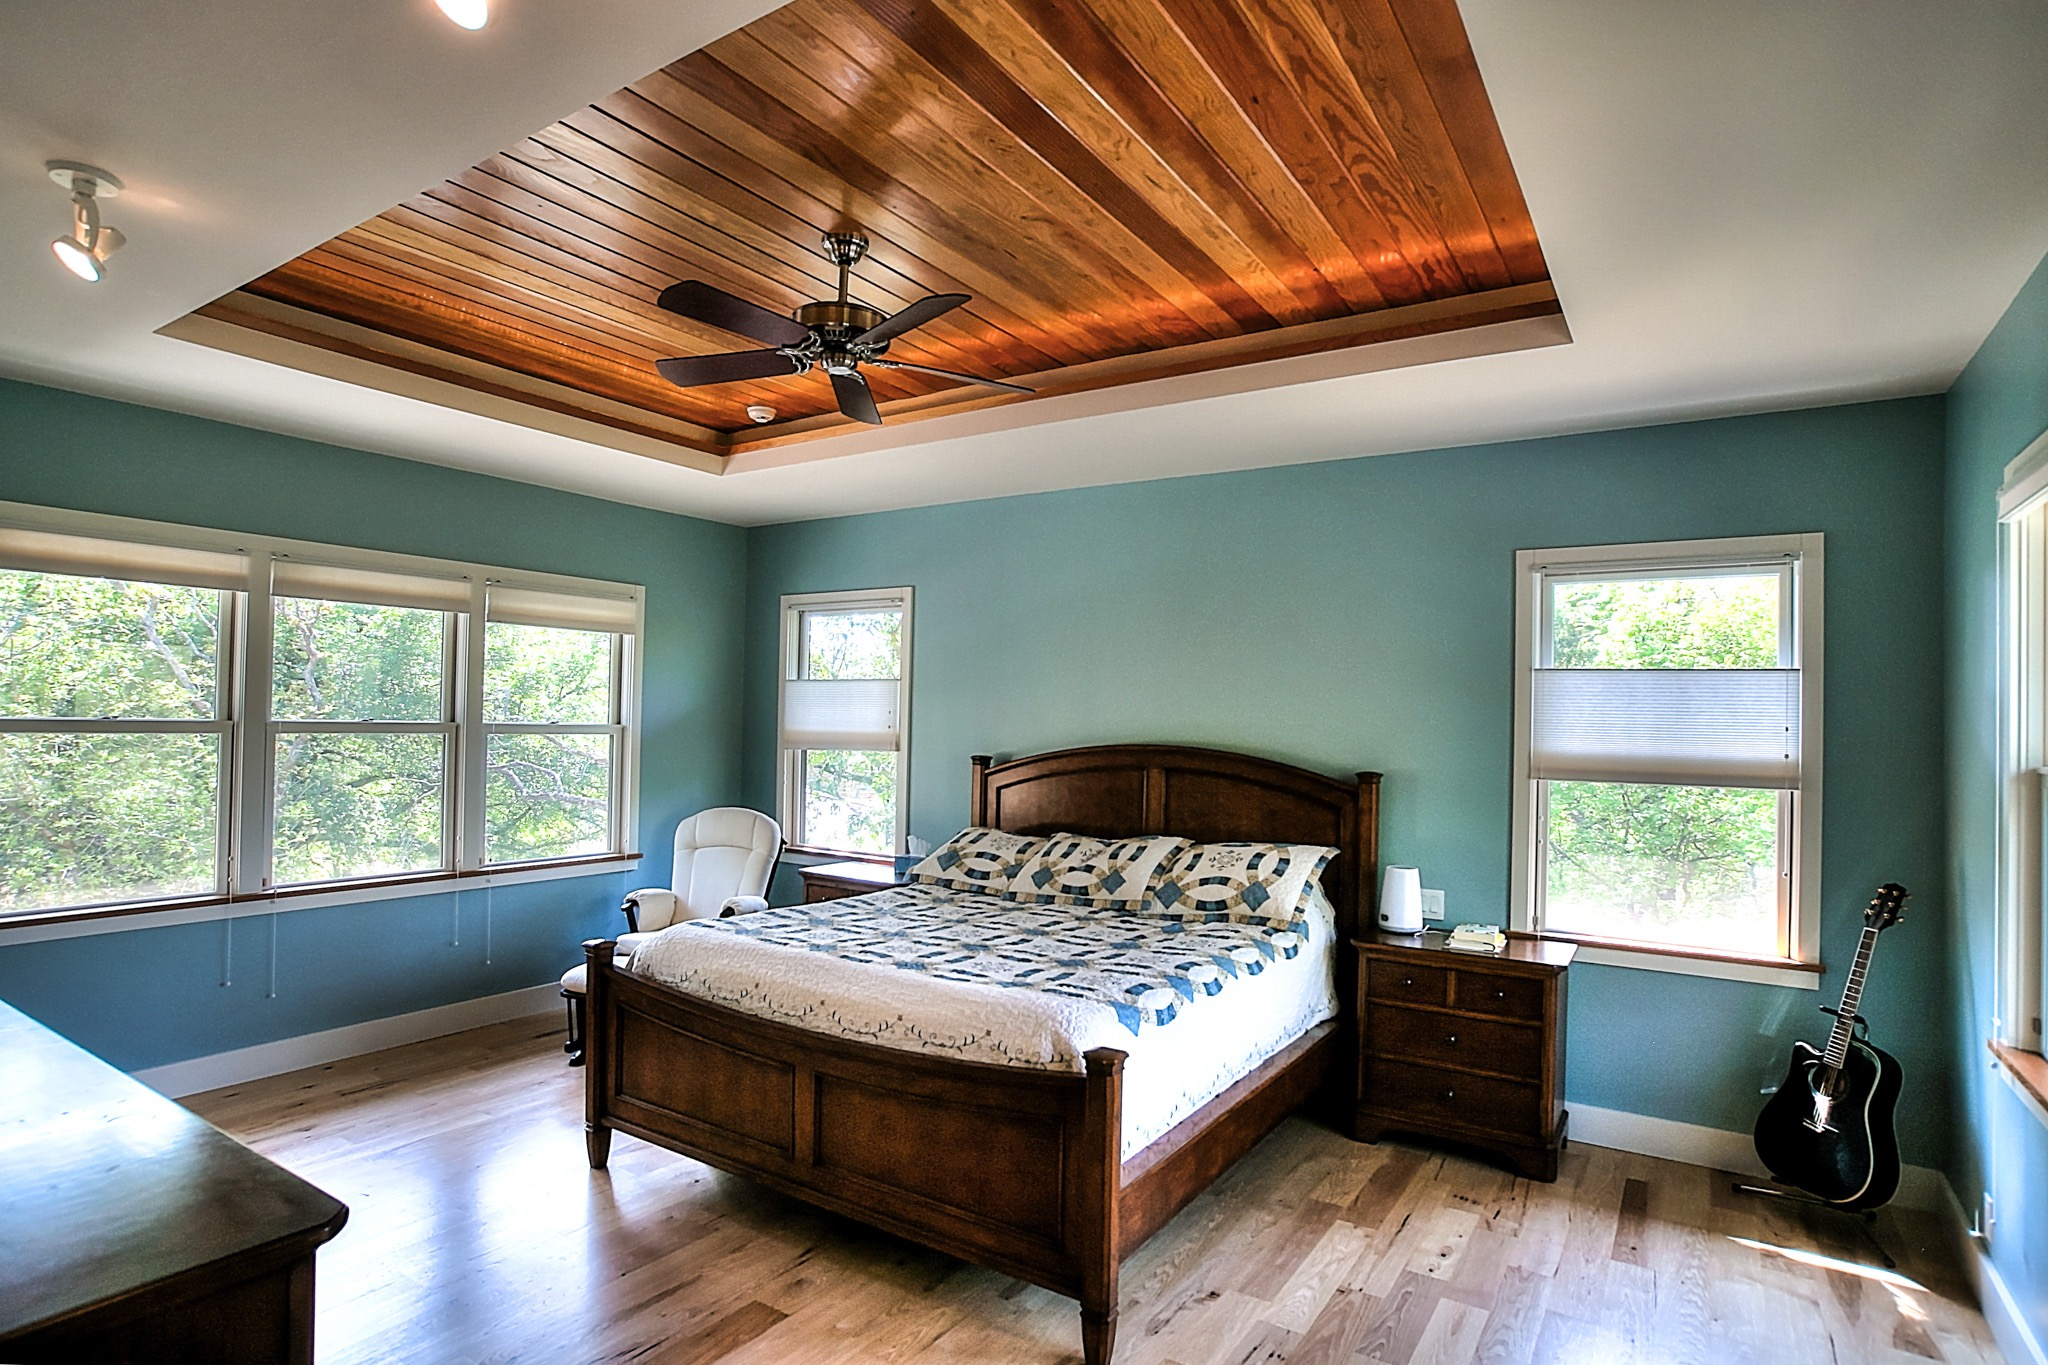 Turquoise Bedroom Features Warm Wood Tray Ceiling (Image 29 of 32)